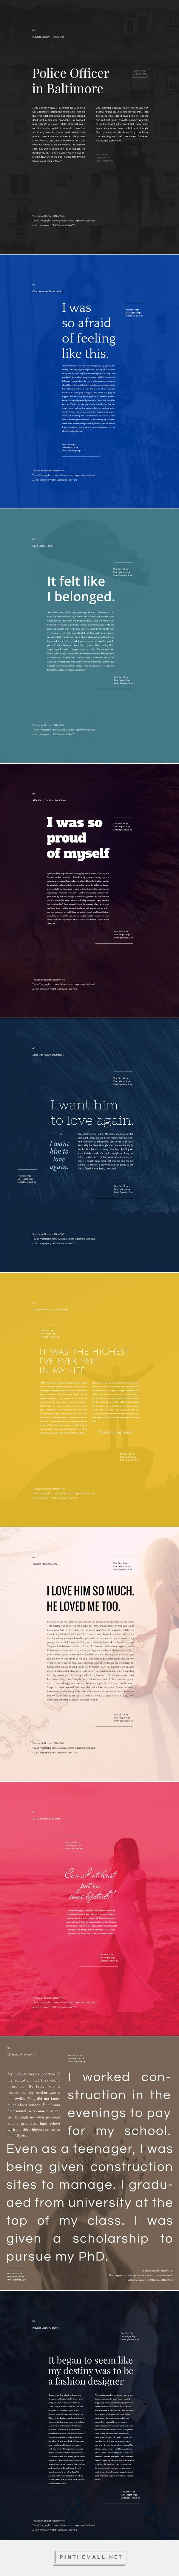 Typography: Google Fonts Combinations on Behance - created via https://pinthemall.net